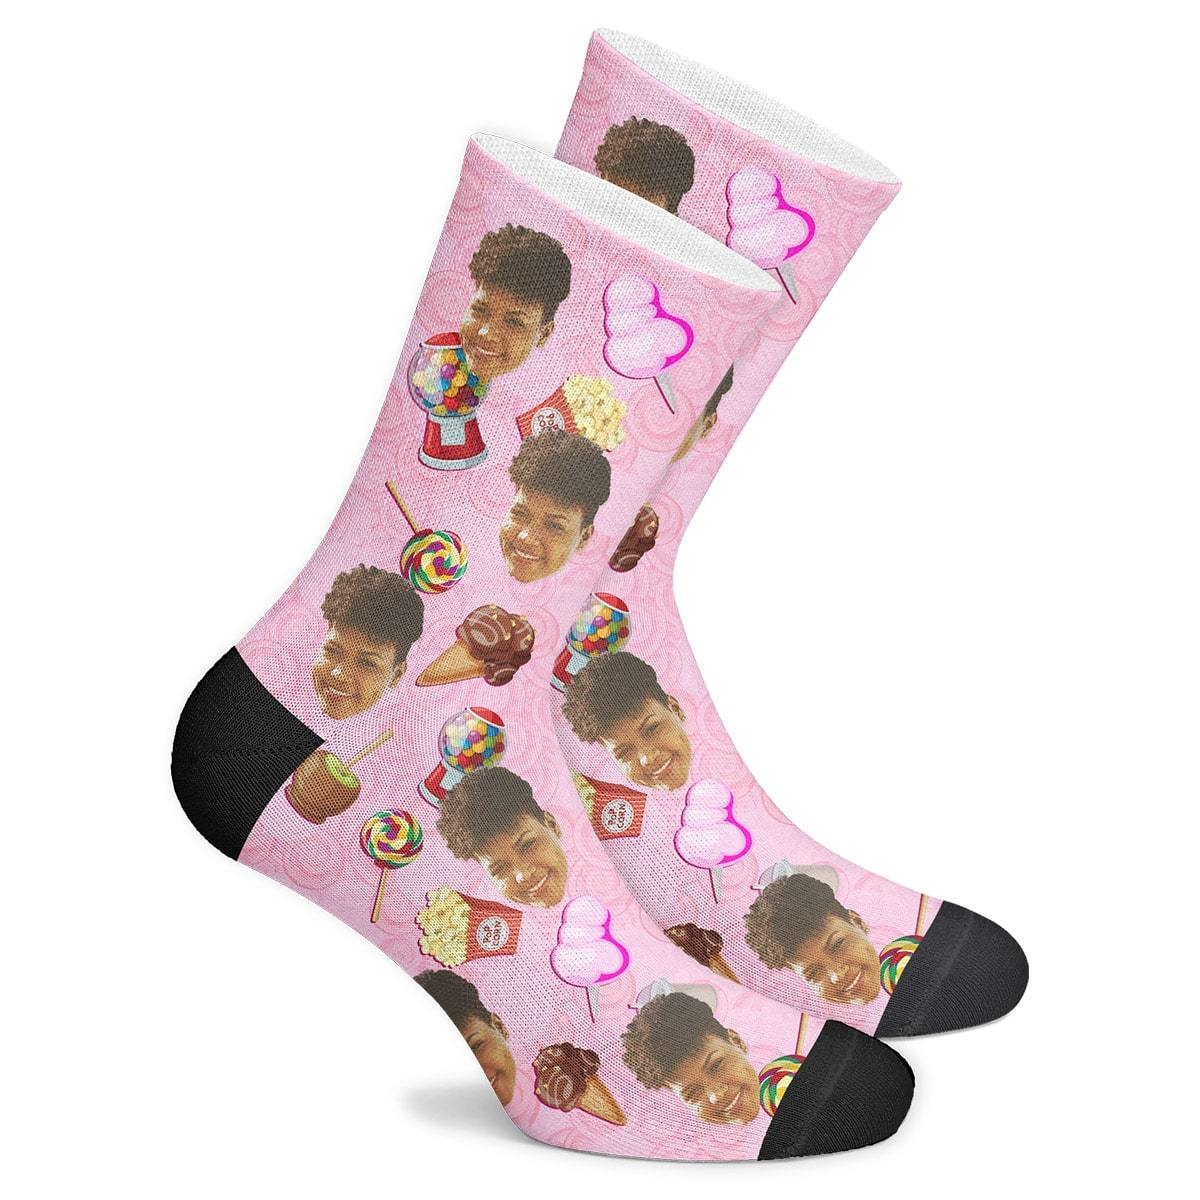 Custom Candy Socks - Myfacesocksau